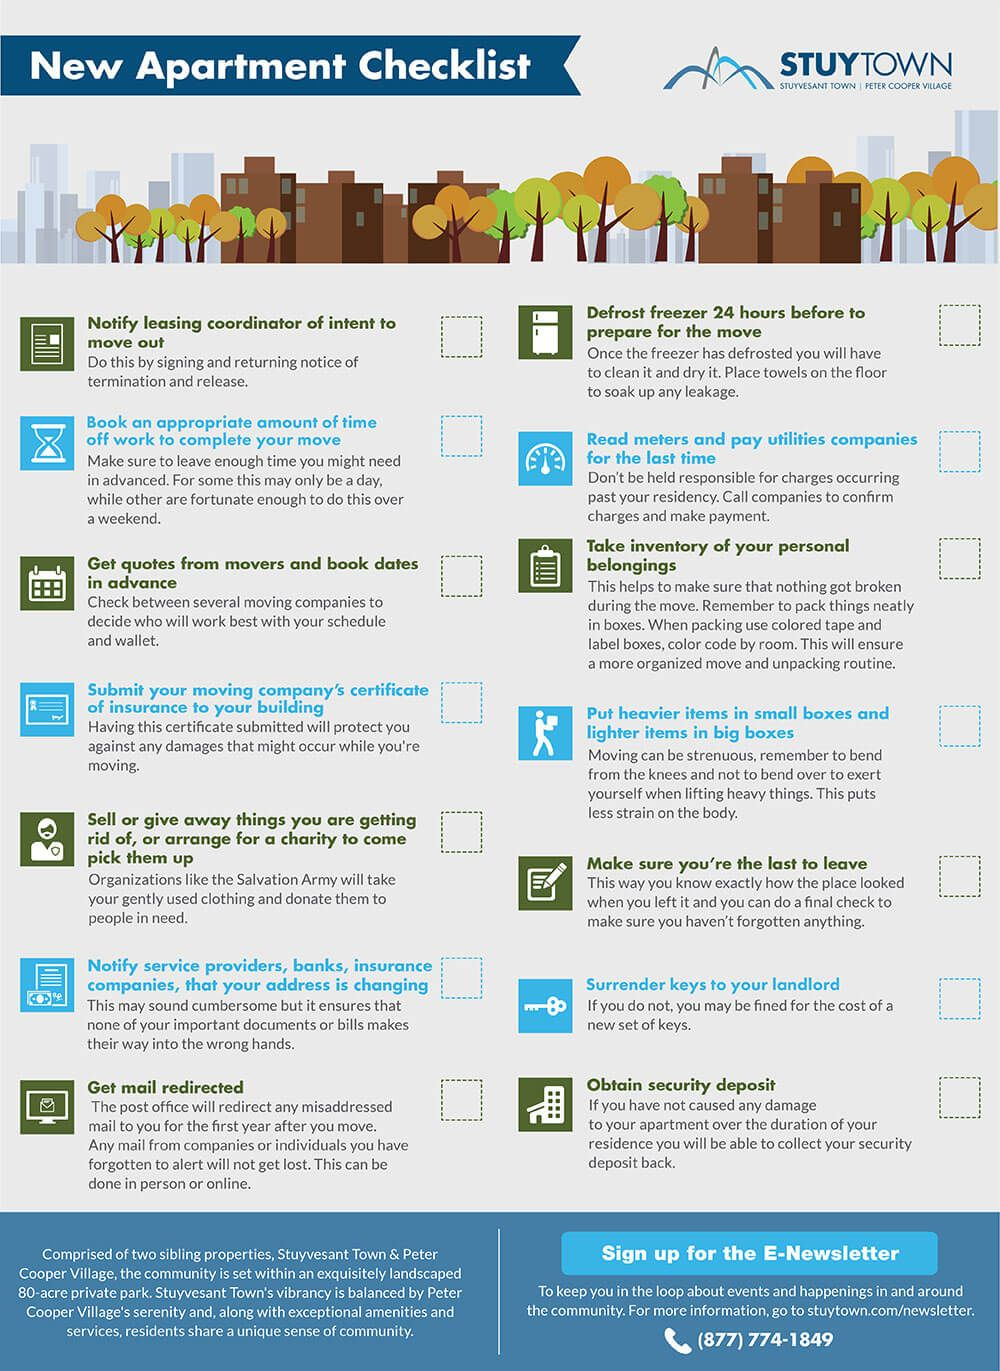 New Apartment Moving Checklist Infographic | WWA | Pinterest ...